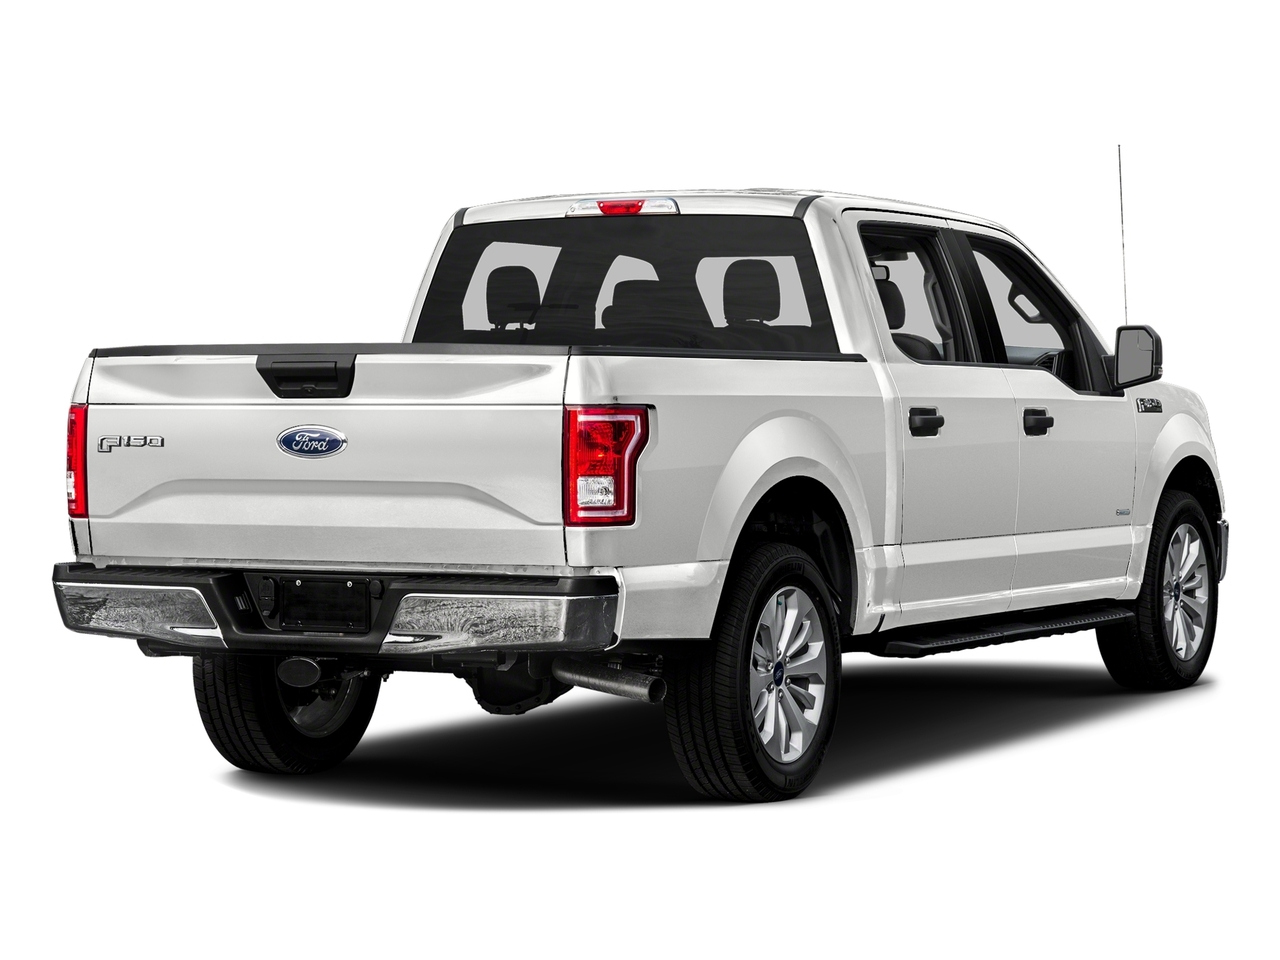 2016 Ford F-150 KING RANCH Crew Cab Pickup Slide